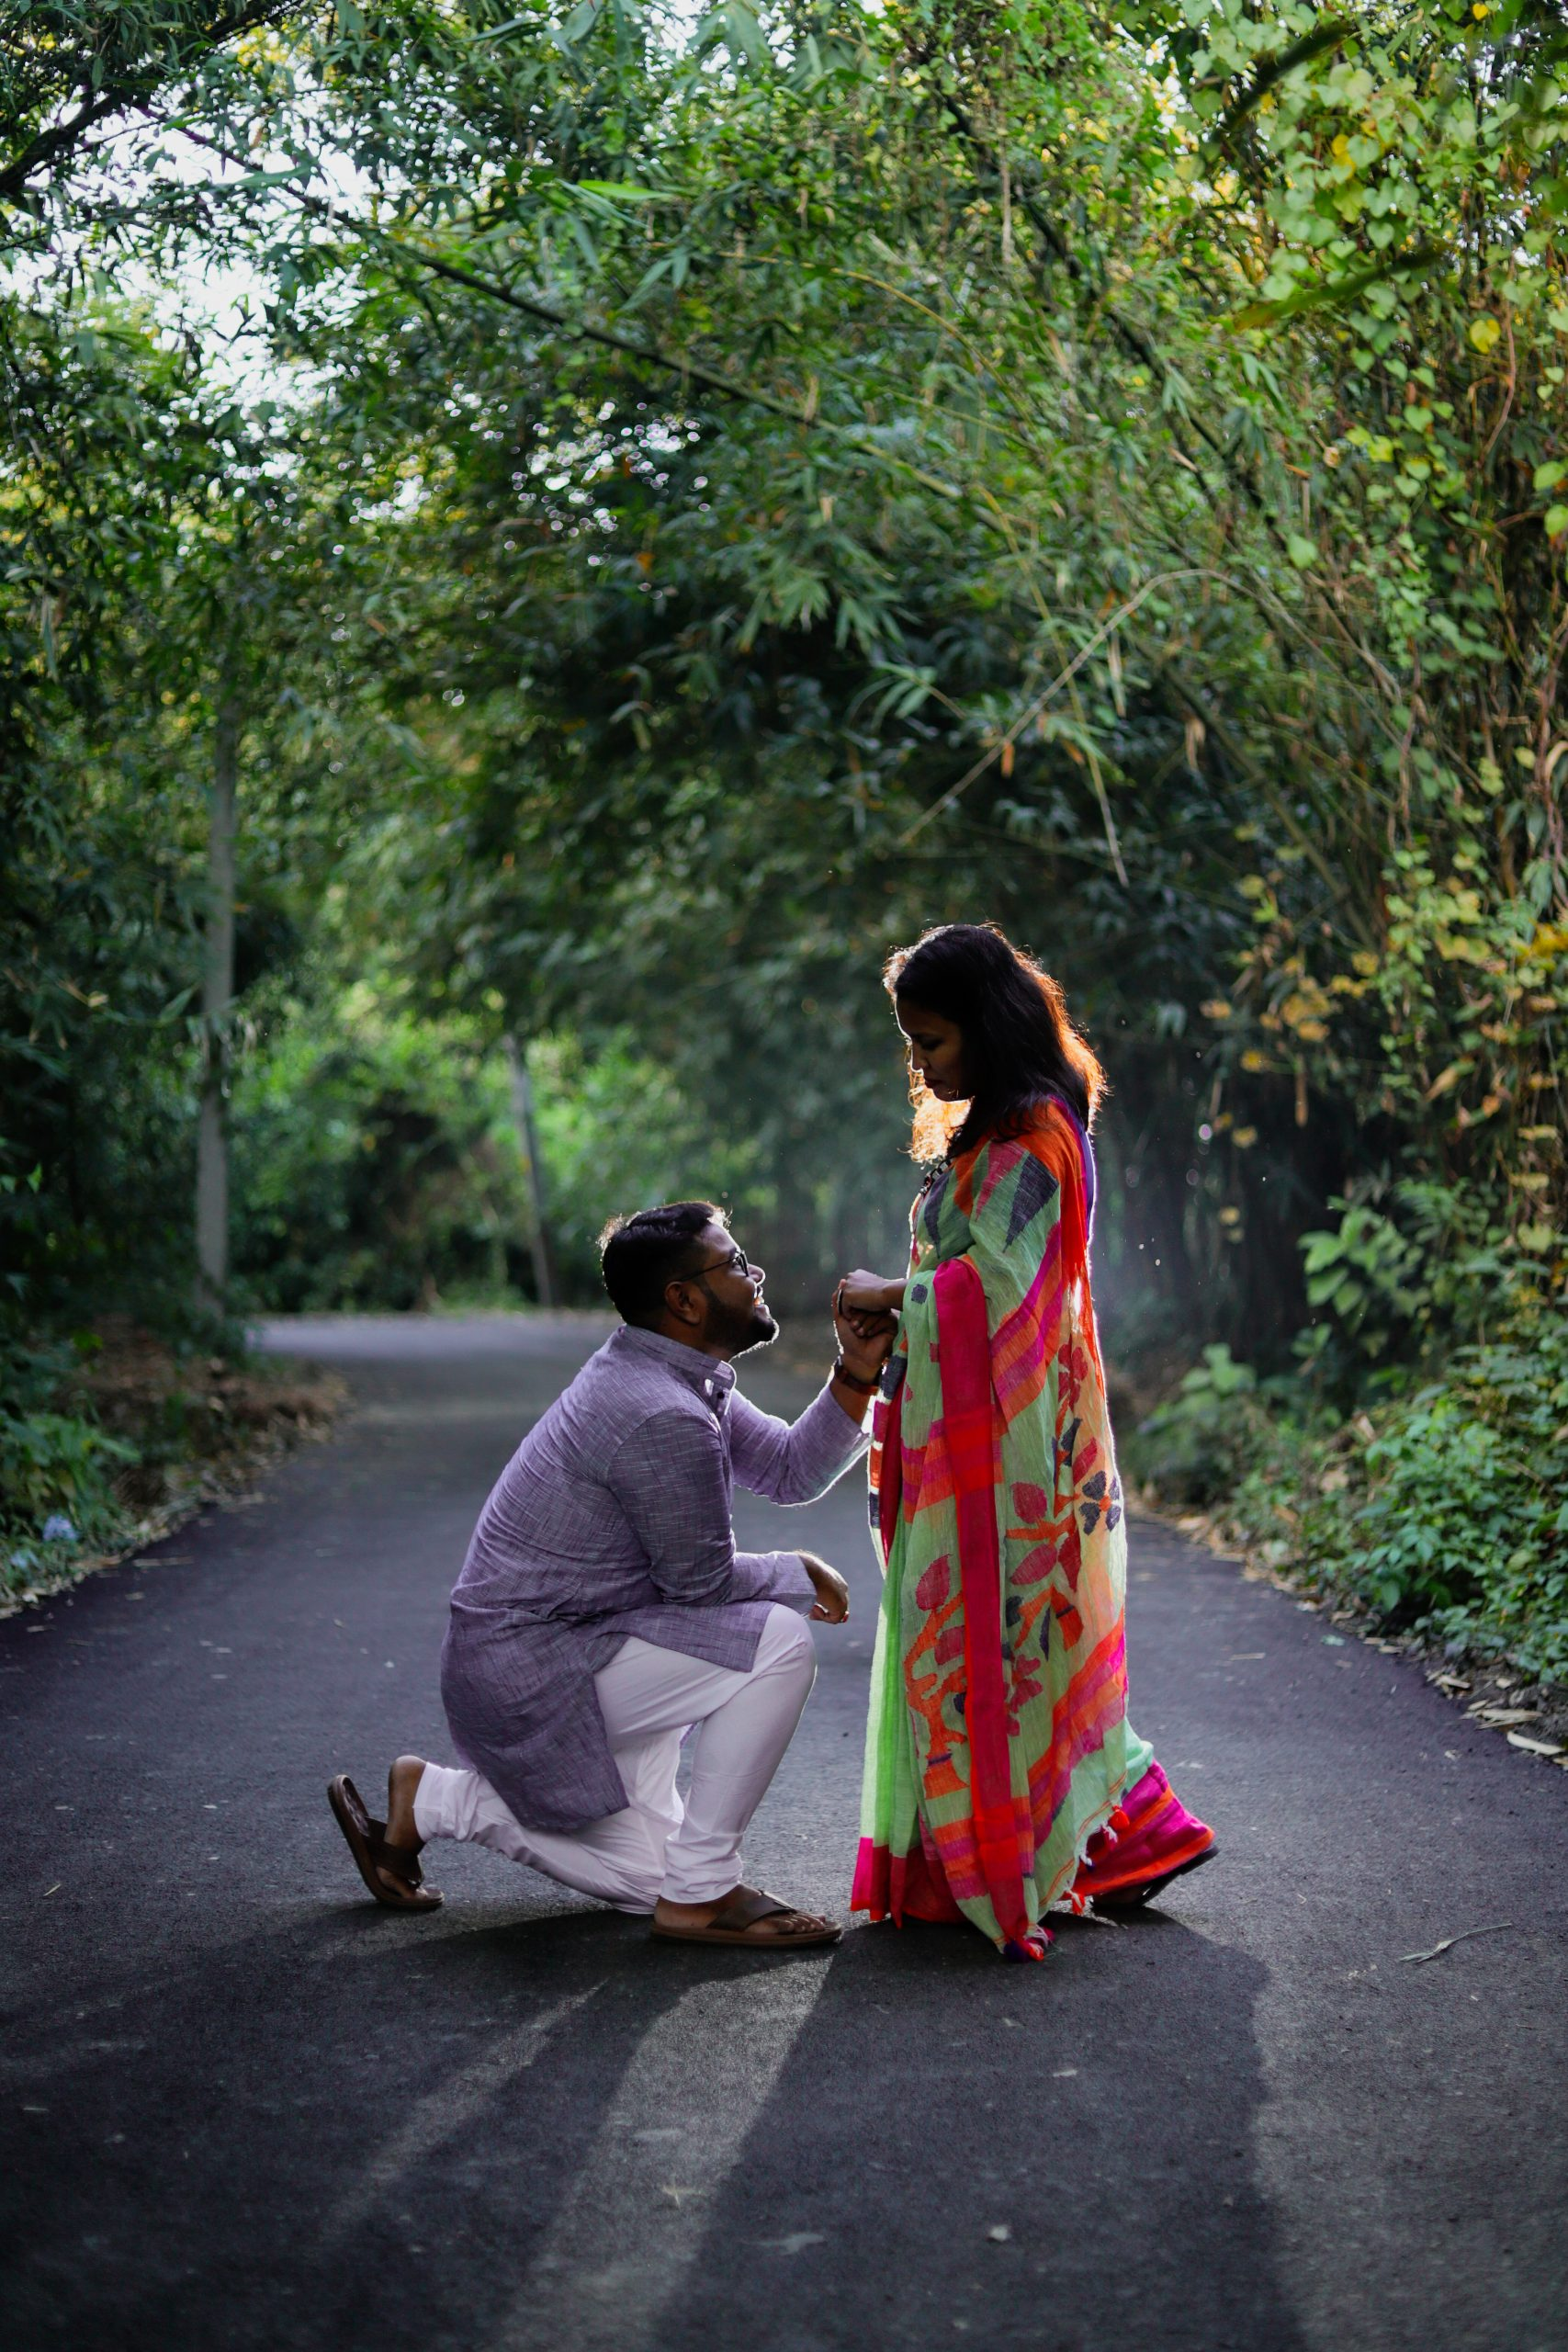 Man proposing girl in the forest road